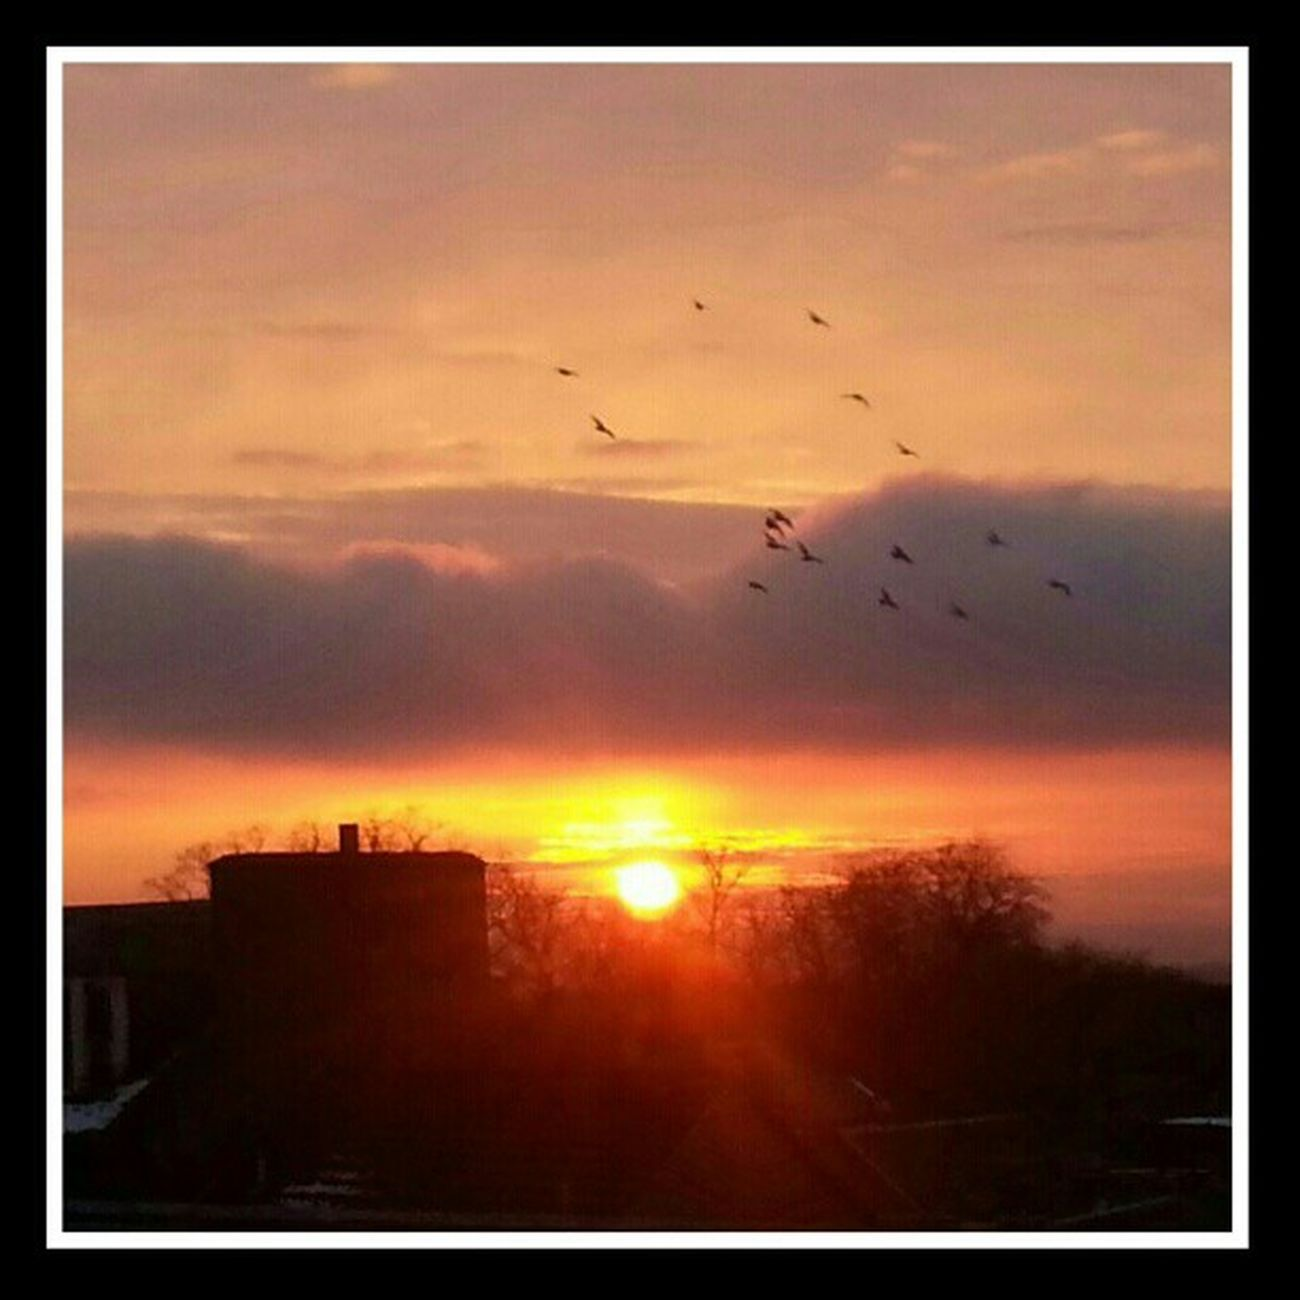 'In flight' Sunsets Sunset Sunsetporn Dunfermline fife Scotland birds Cloudporn sky skyporn skyback sky_collection igtube ig_sunsetshots igaddict Igers igdaily igshots tagstagram iphonesia most_deserving thebestshooter photooftheday insta_pick_skyart insta_pick insta_shutter instacanvas instasunsets instagood